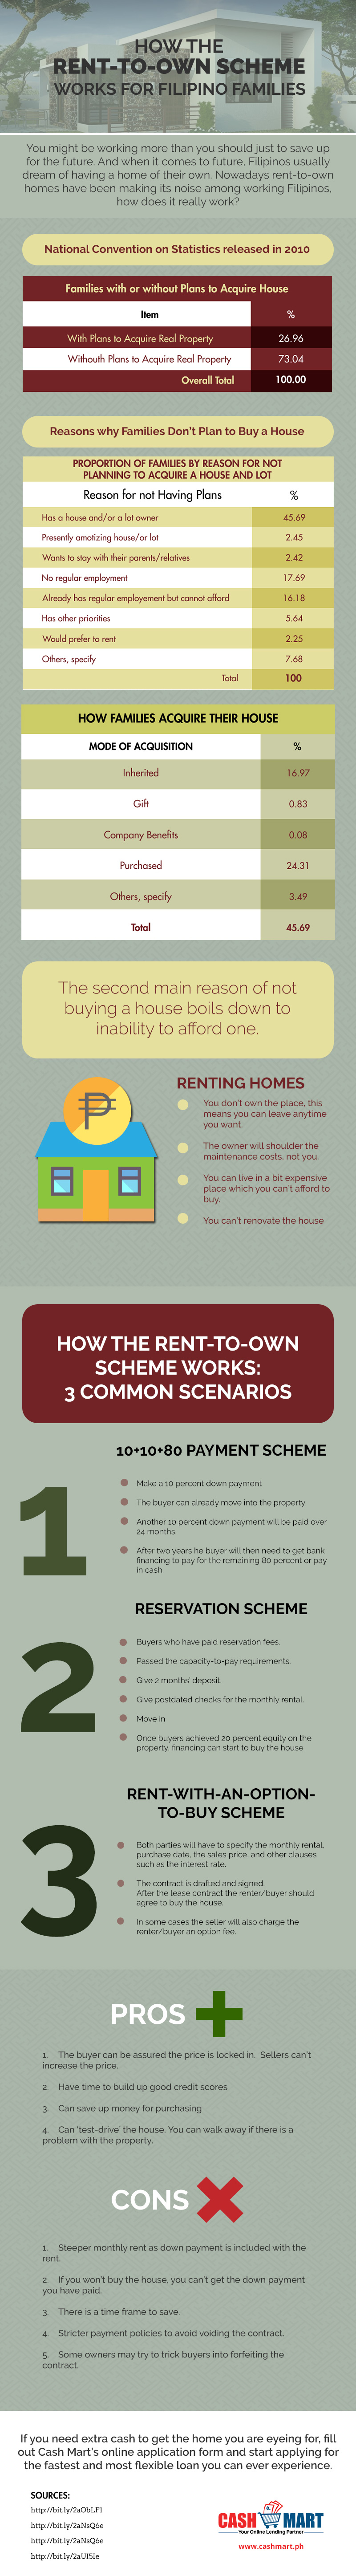 how-the-rent-to-own-scheme-works_update